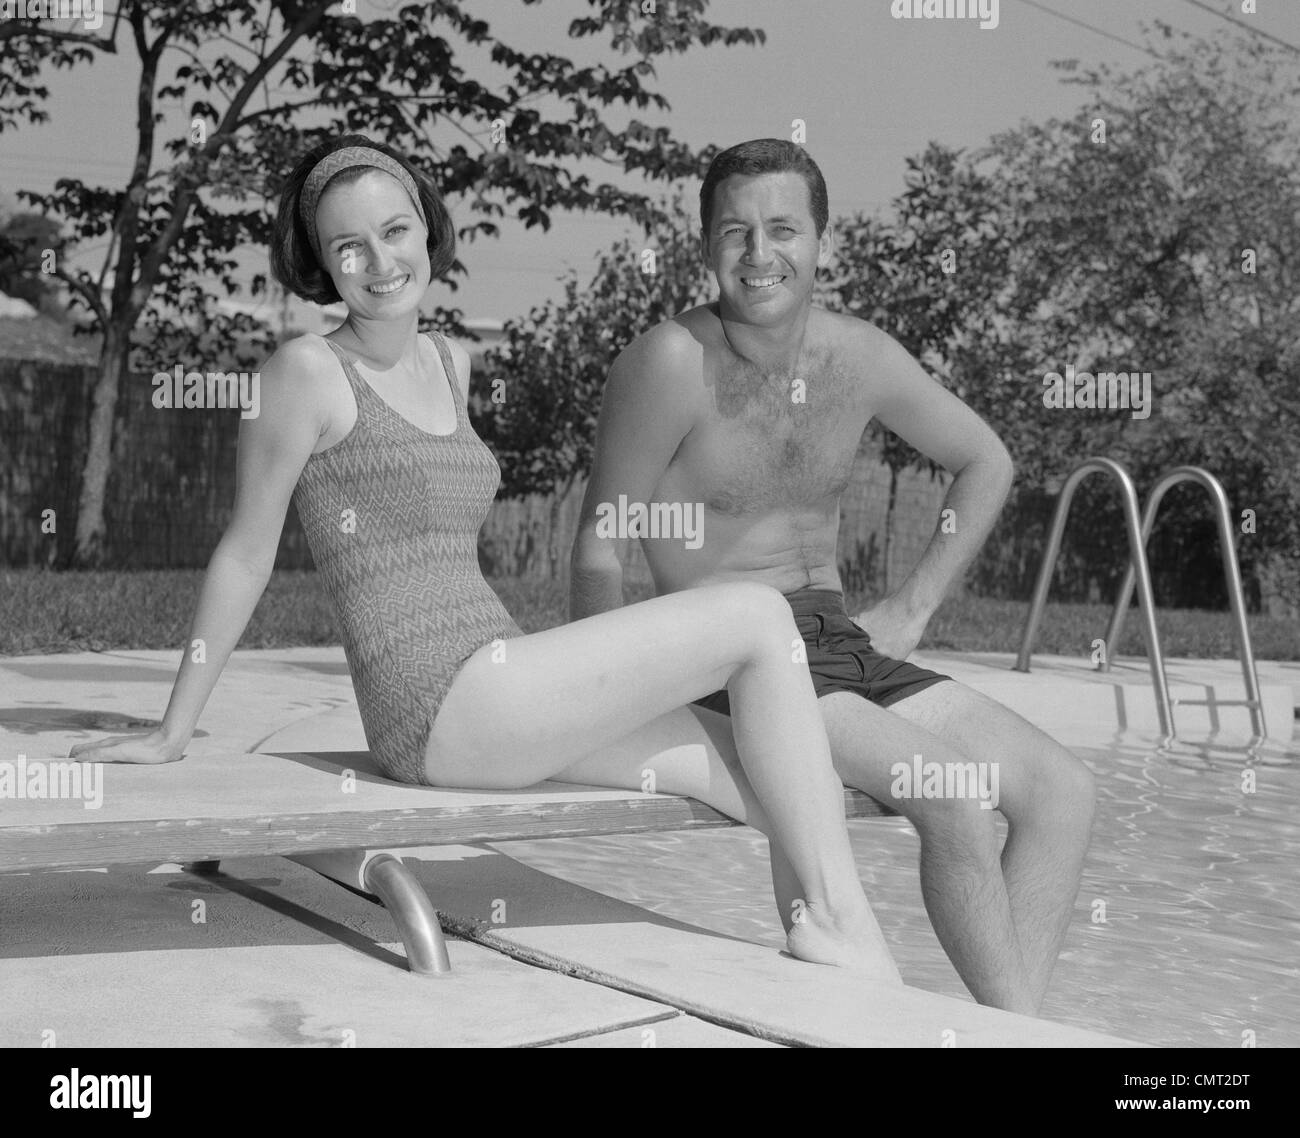 7bc8e2e123f75 1960s MAN WOMAN COUPLE SITTING ON DIVING BOARD ON SIDE OF SWIMMING POOL -  Stock Image